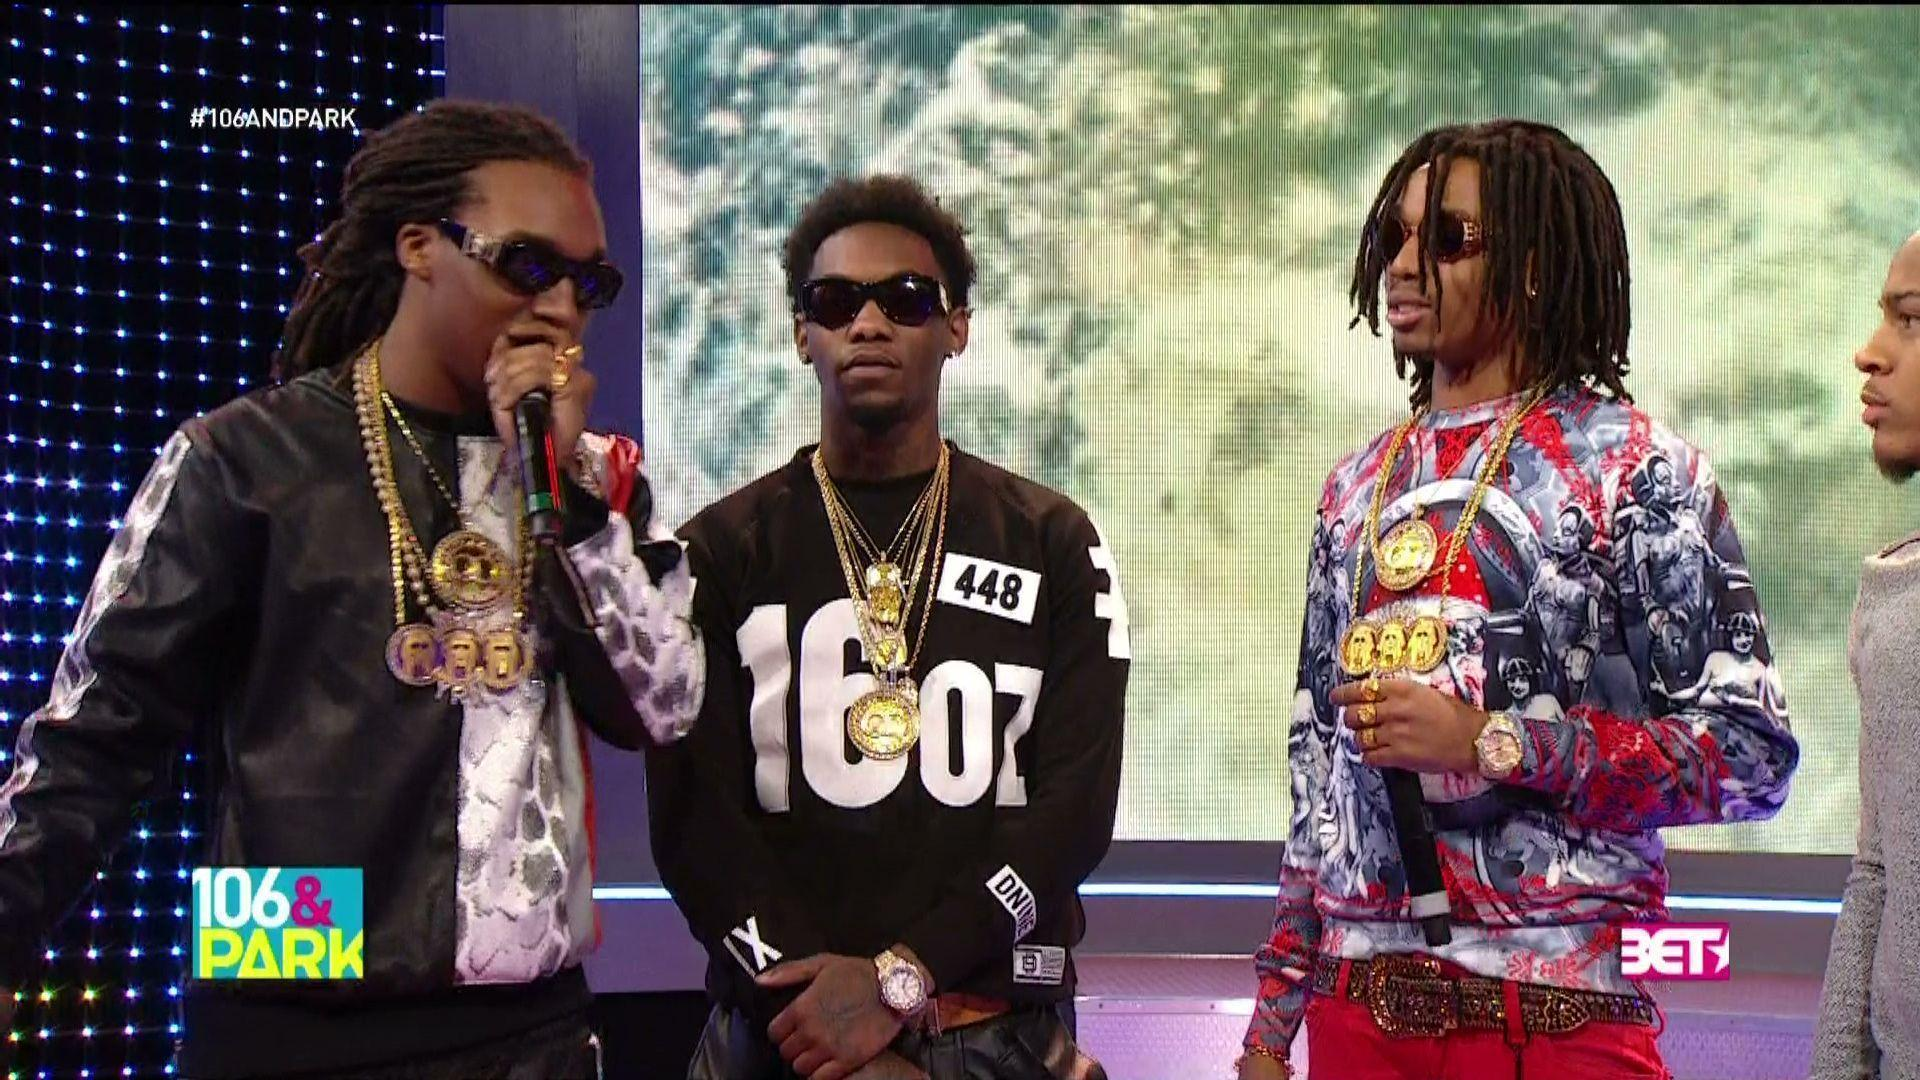 Migos Wallpapers HD Collection For Free Download